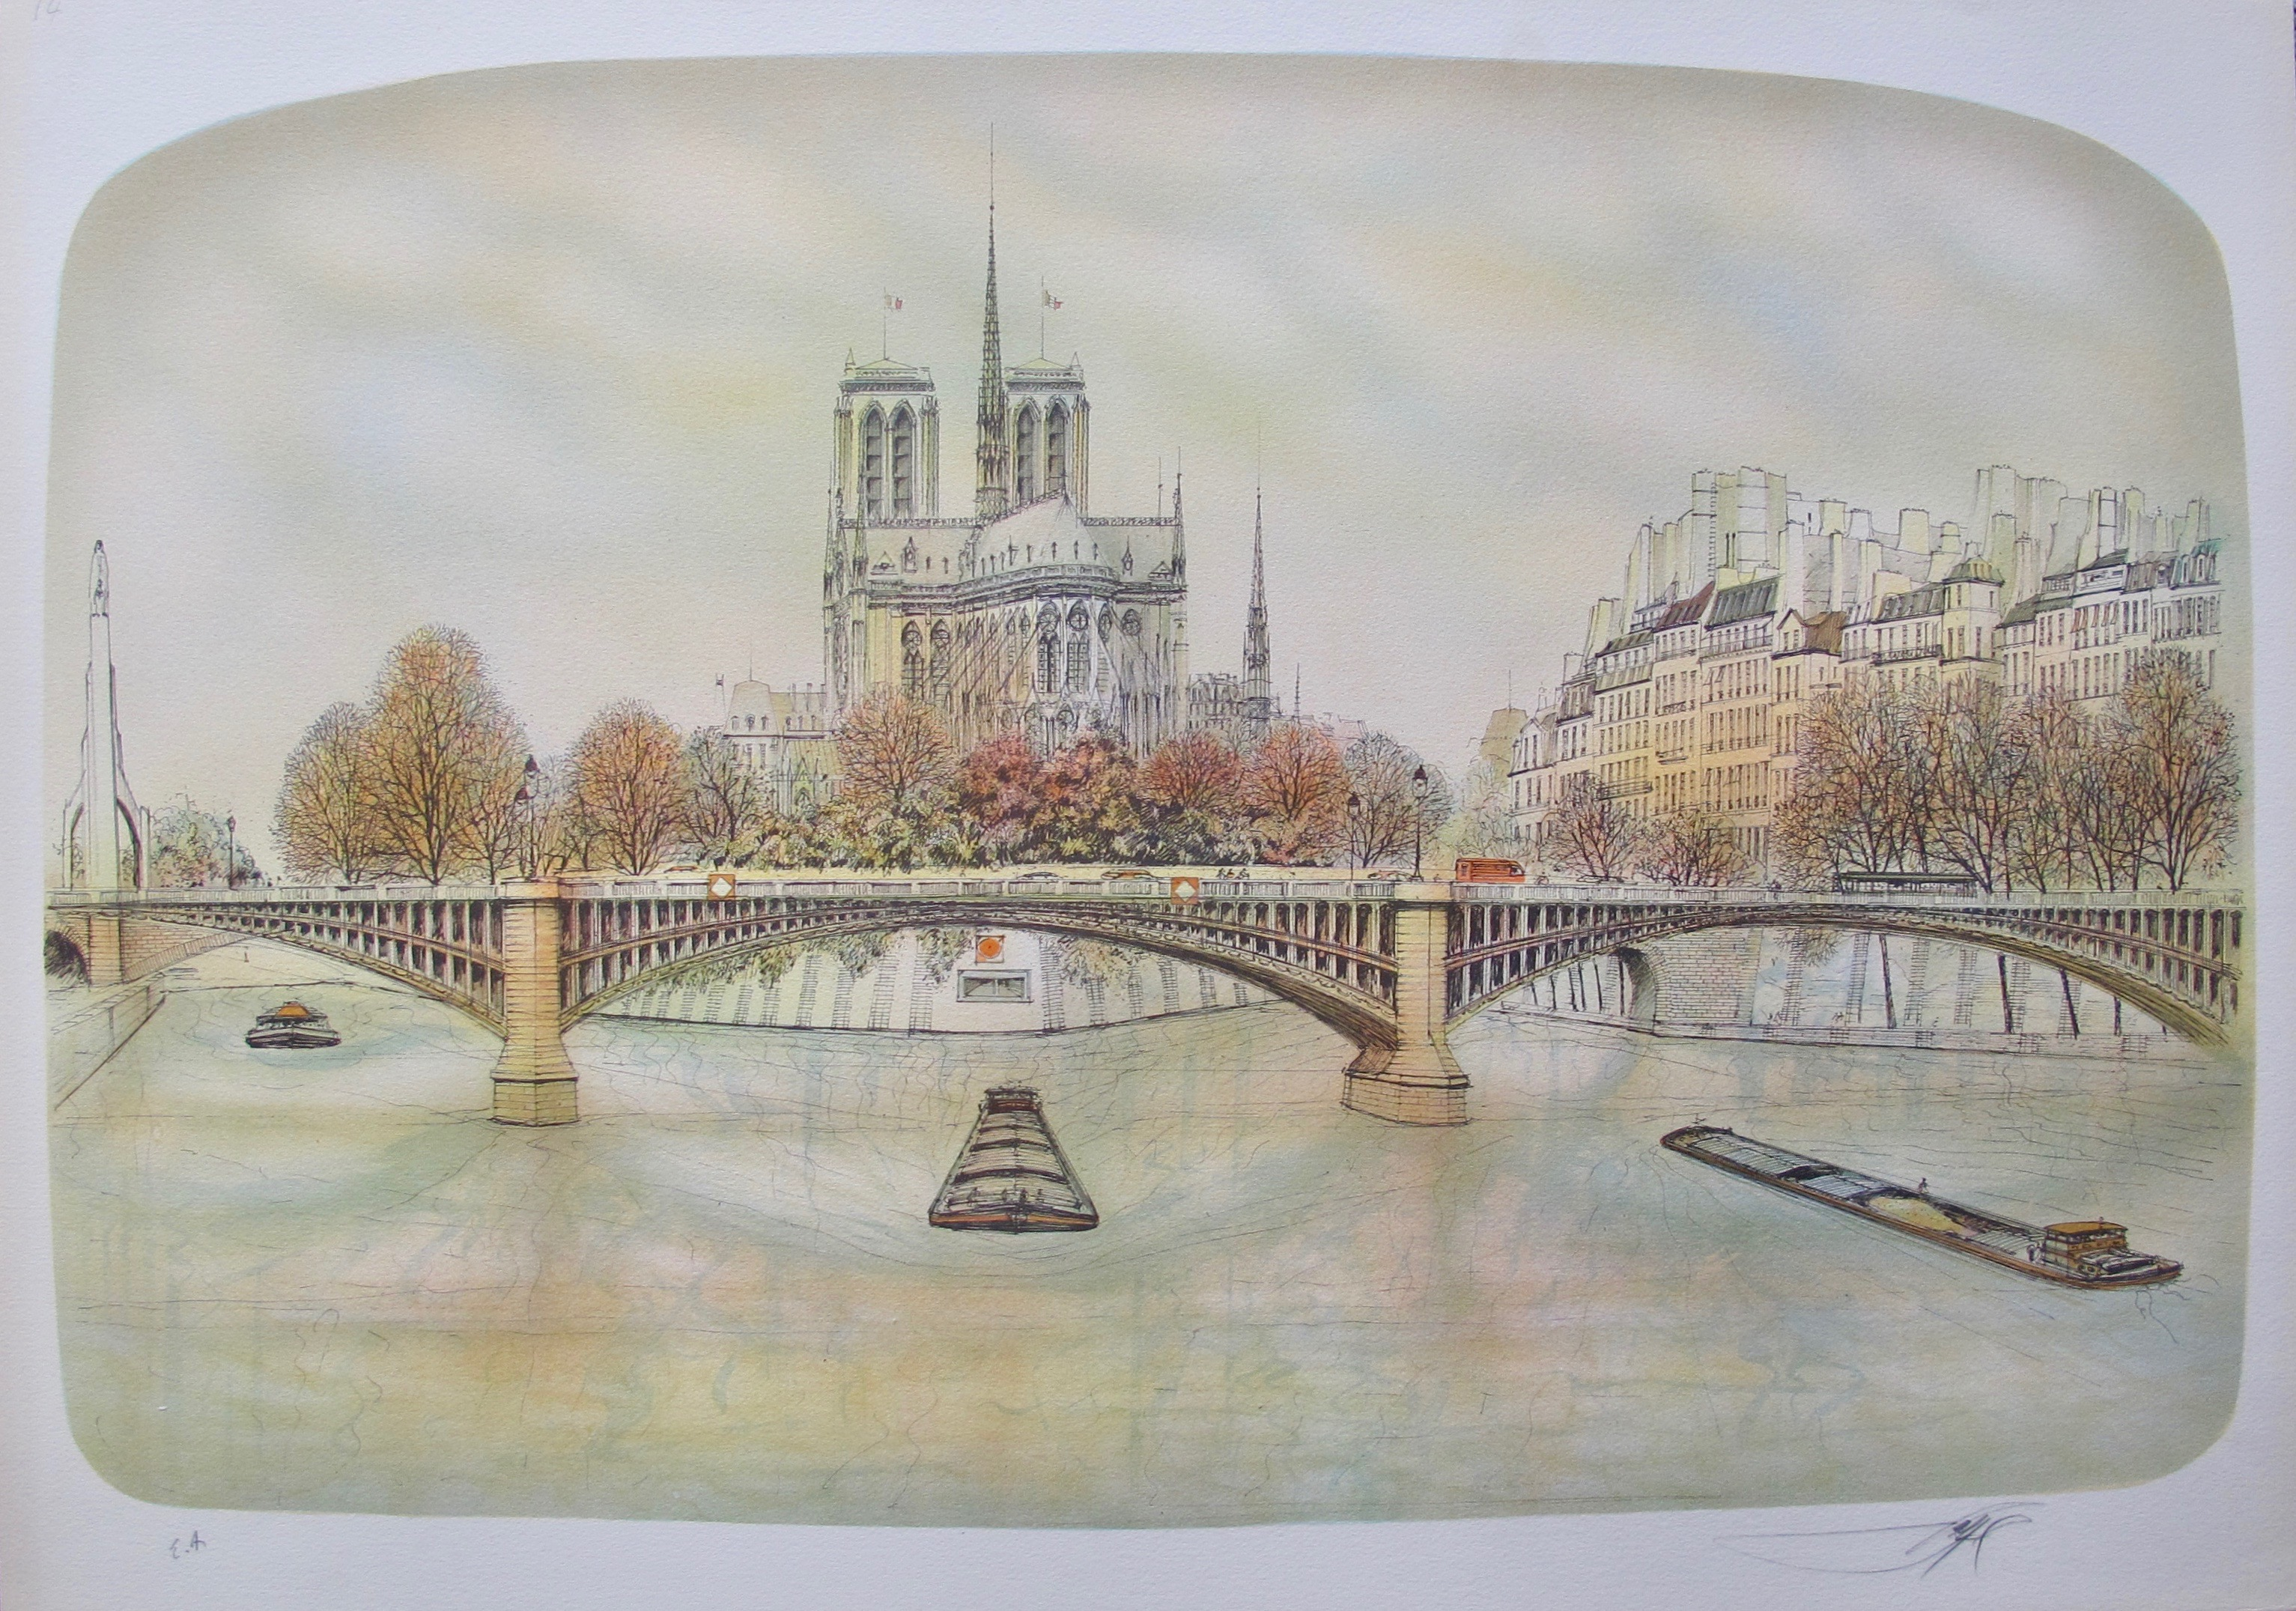 ROLF RAFFLEWSKI NOTRE DAME PARIS Hand Signed Limited Edition Lithograph